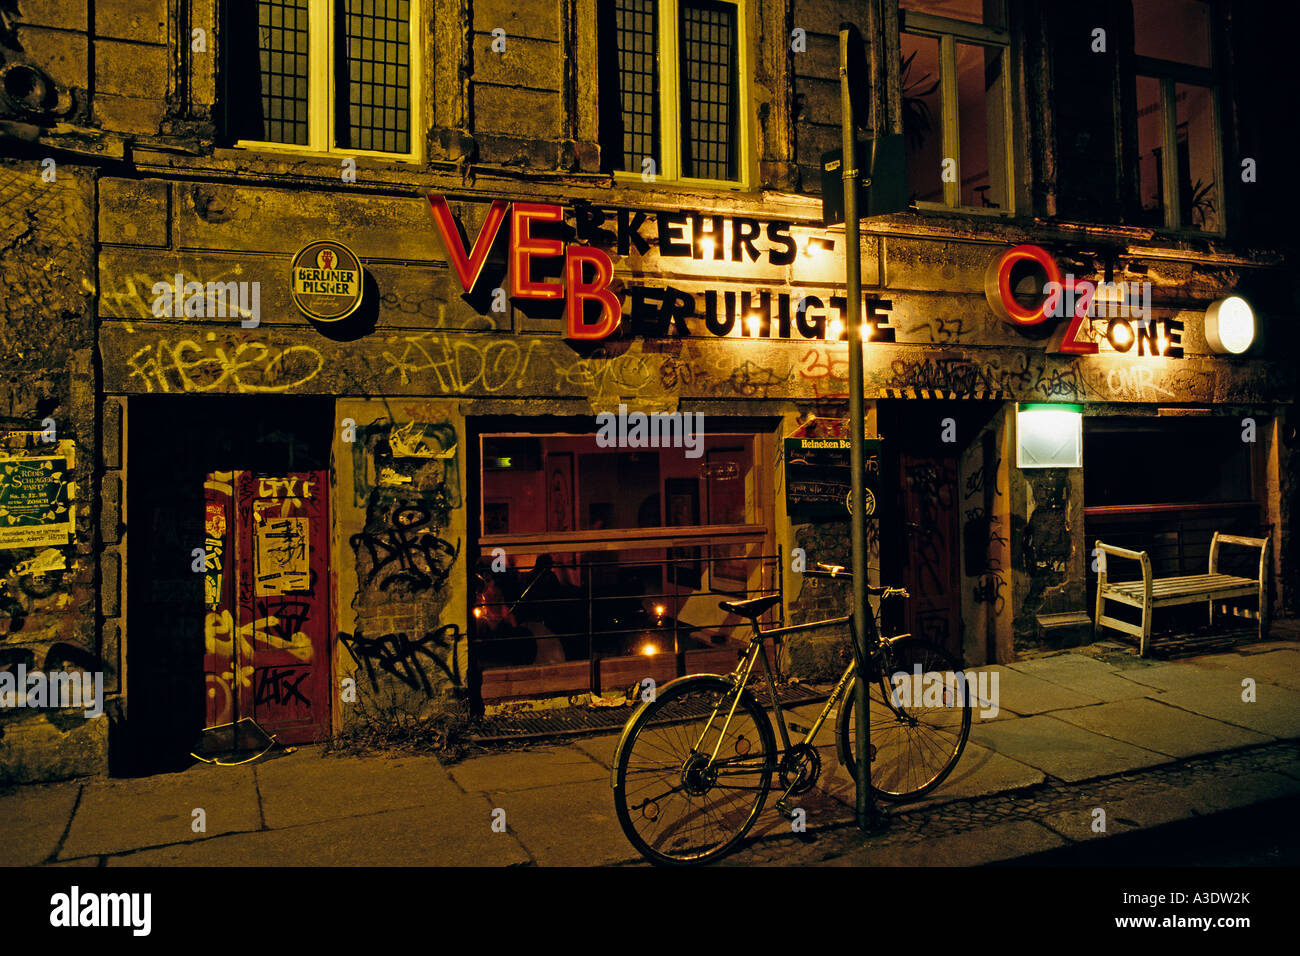 Former east german bar in a dilapidated house in Oranienburger Strass, Berlin, Germany - Stock Image